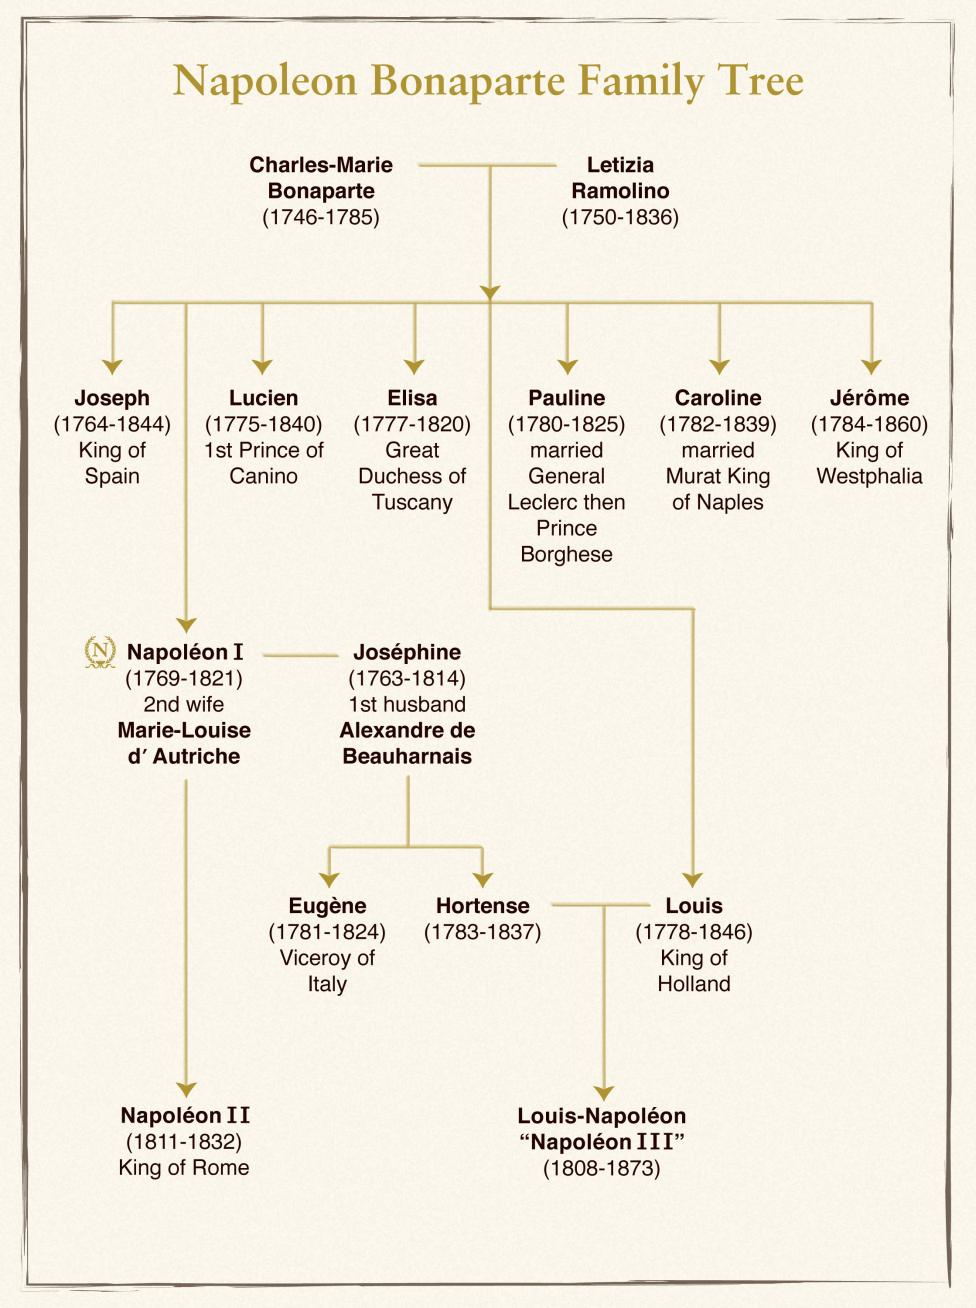 Napoleon III's family tree